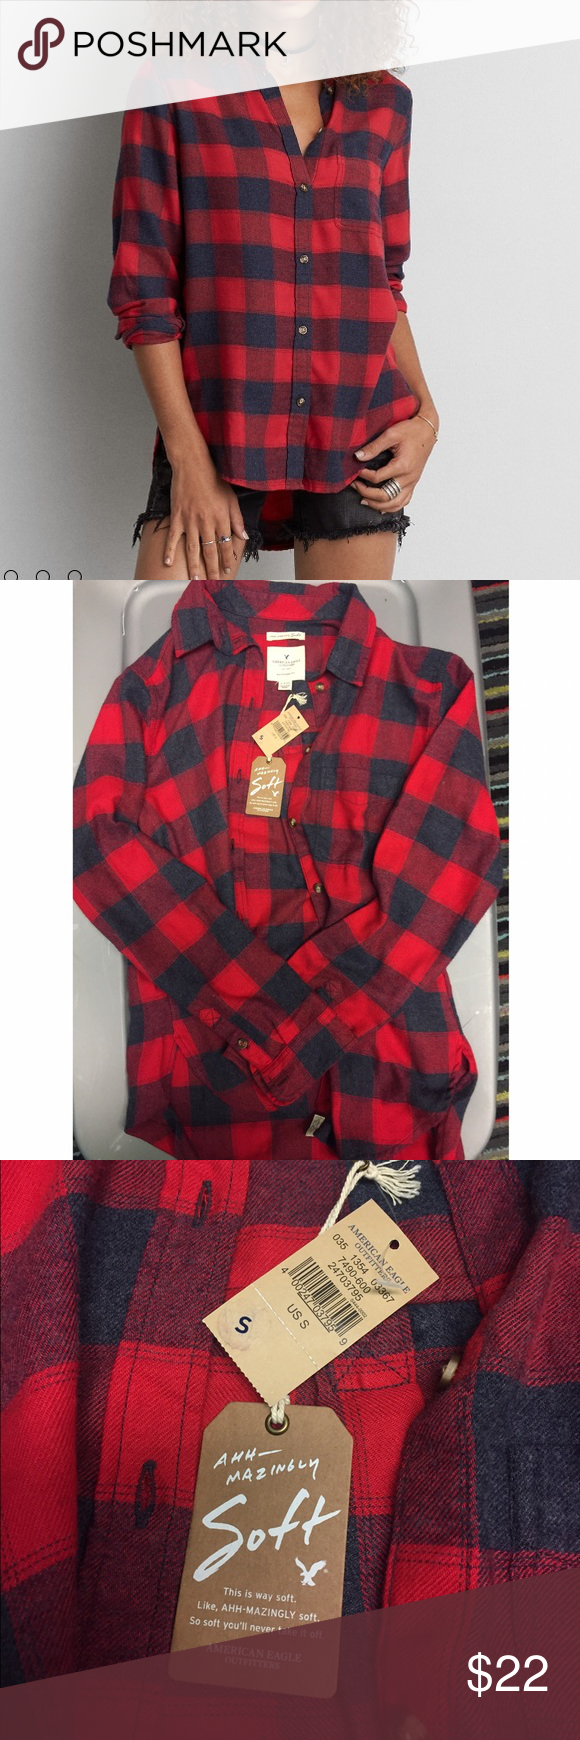 AEO Ahh-mazingly Soft Boyfriend Flannel Shirt This American Eagle Outfitters flannel is brand new with tags. It's a button down flannel with red and black checkered print. It truly is amazingly soft! Women's size small. Originally about $45. American Eagle Outfitters Tops Button Down Shirts